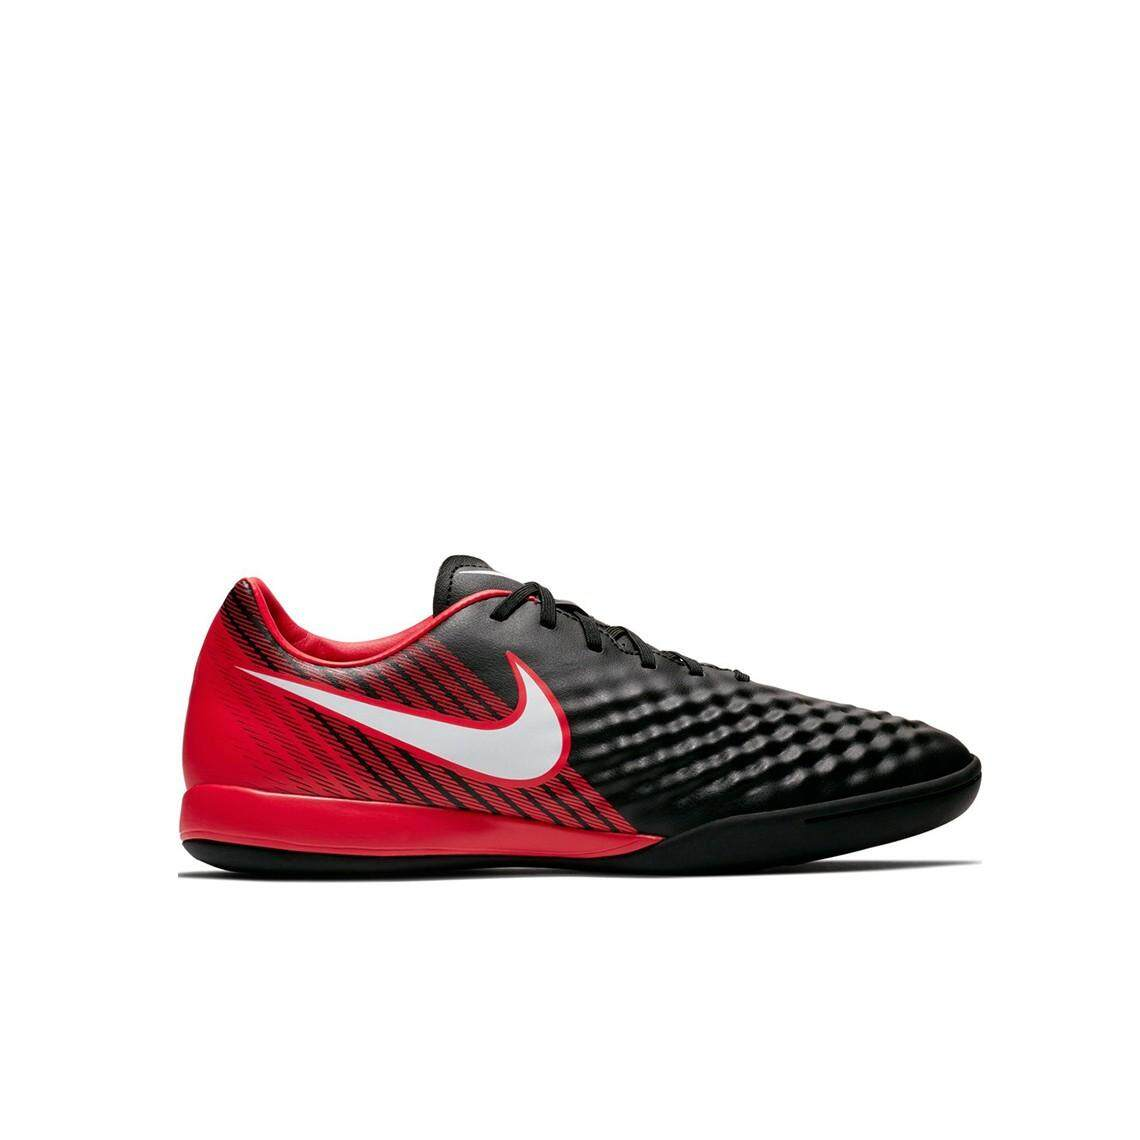 Nike MAGISTAX ONDA II IC-BLACK WHITE-UNIVERSITY RED Sport Shoes Grade 3 231368a284c